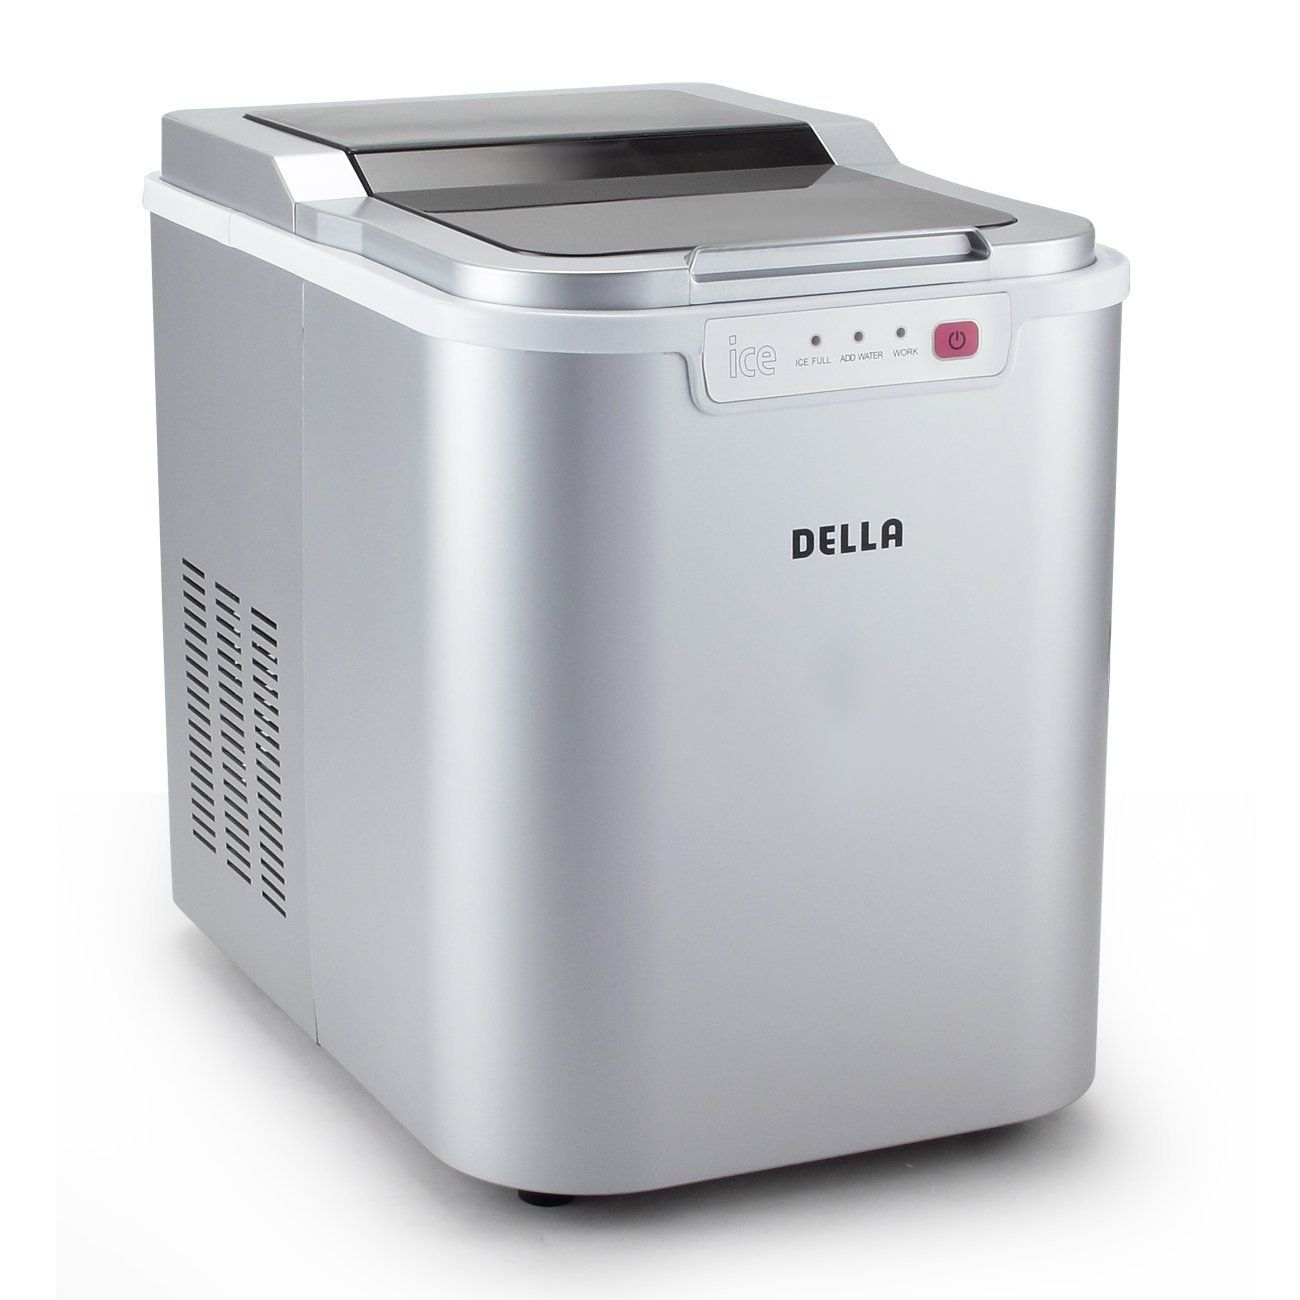 Della 048 Gm 48225 Portable Ice Maker Machine High Capacity